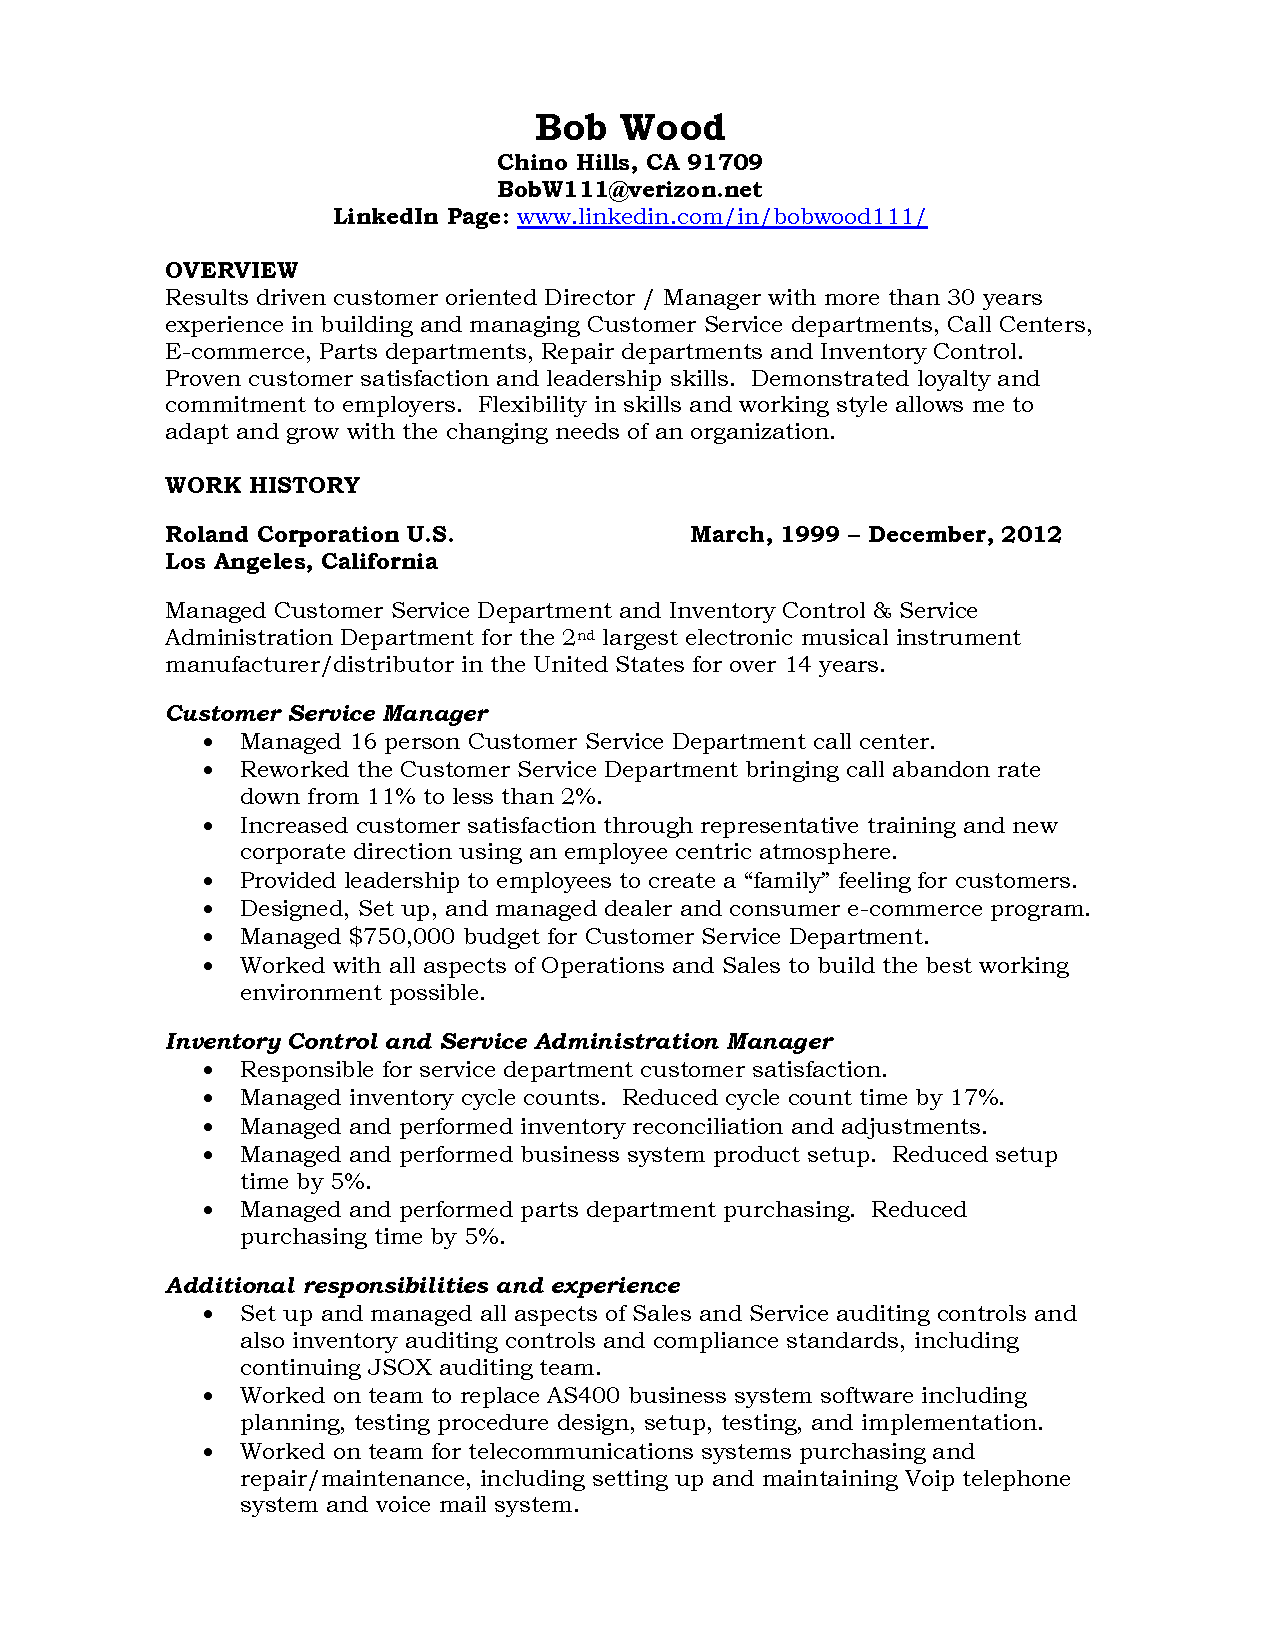 resume customer service manager resume verbiage · customer service